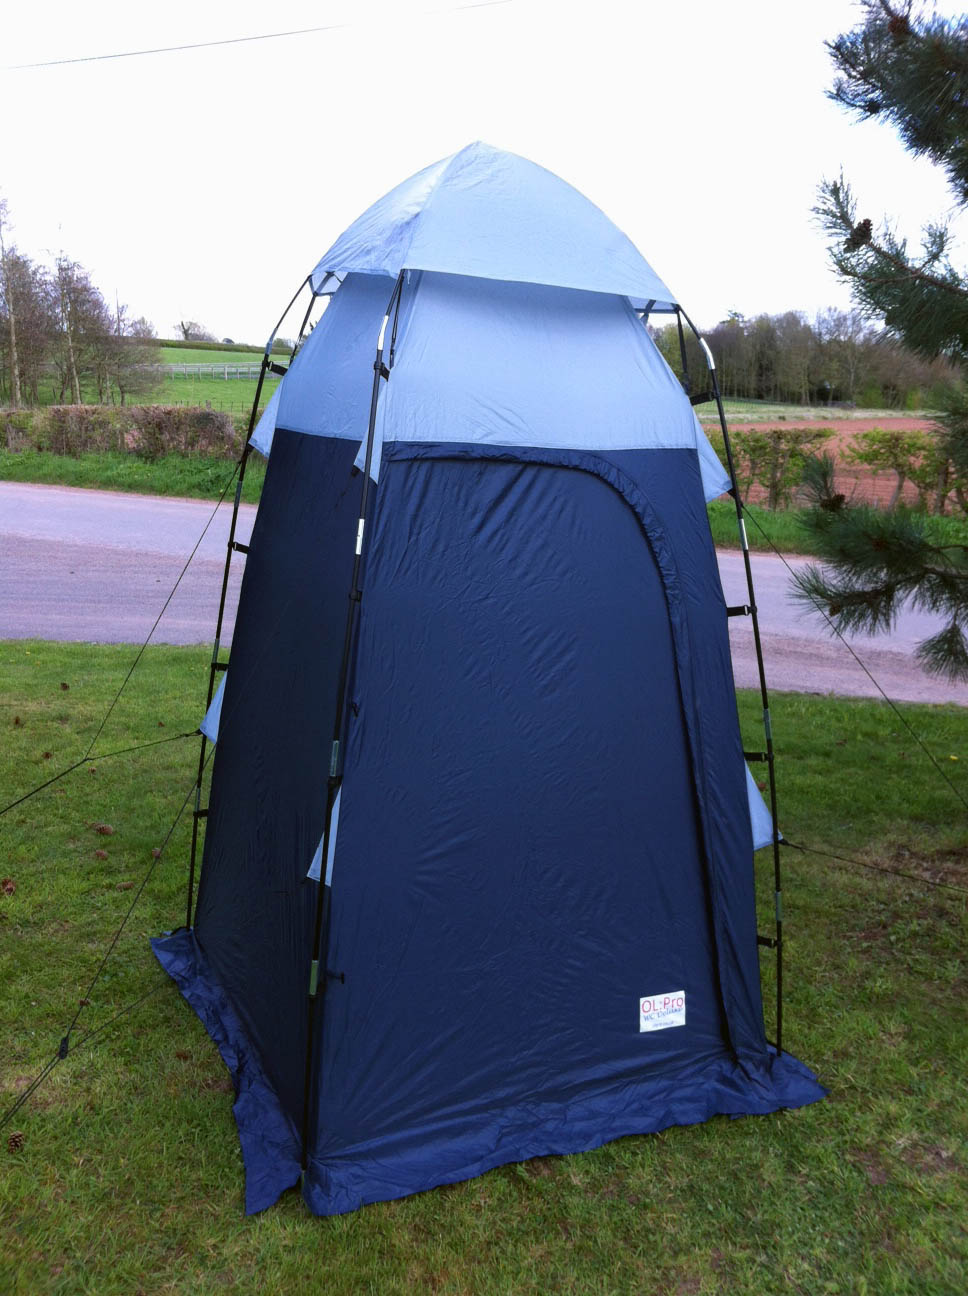 Ol Pro Deluxe Toilet Tent Utility Tent For Camping